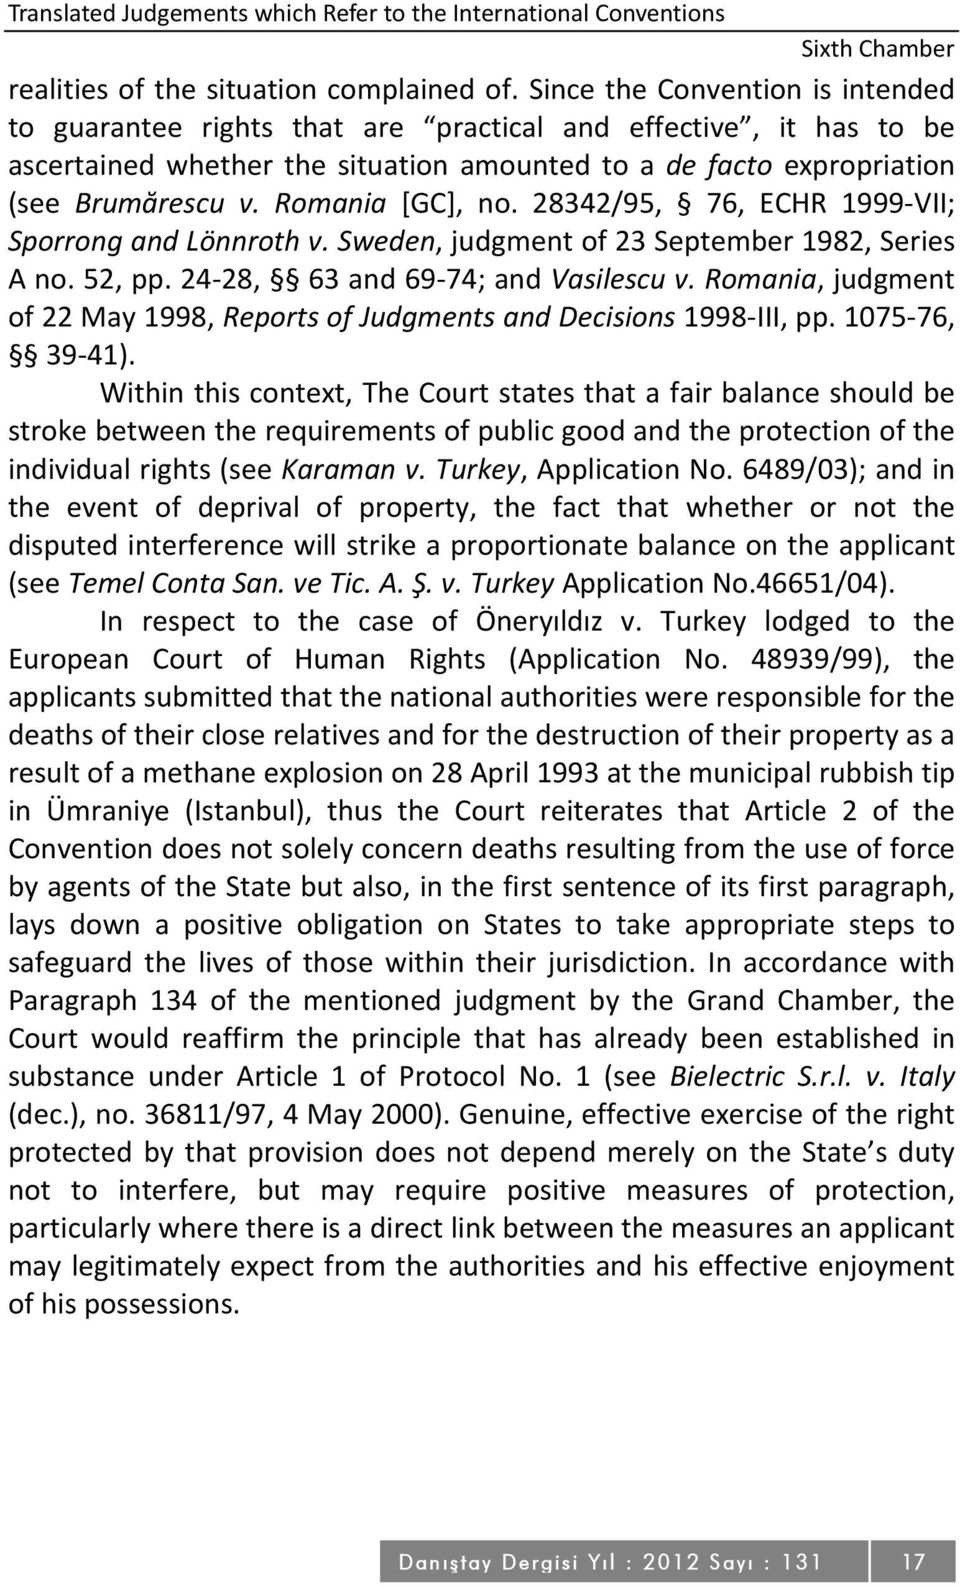 Romania [GC], no. 28342/95, 76, ECHR 1999-VII; Sporrong and Lönnroth v. Sweden, judgment of 23 September 1982, Series A no. 52, pp. 24-28, 63 and 69-74; and Vasilescu v.